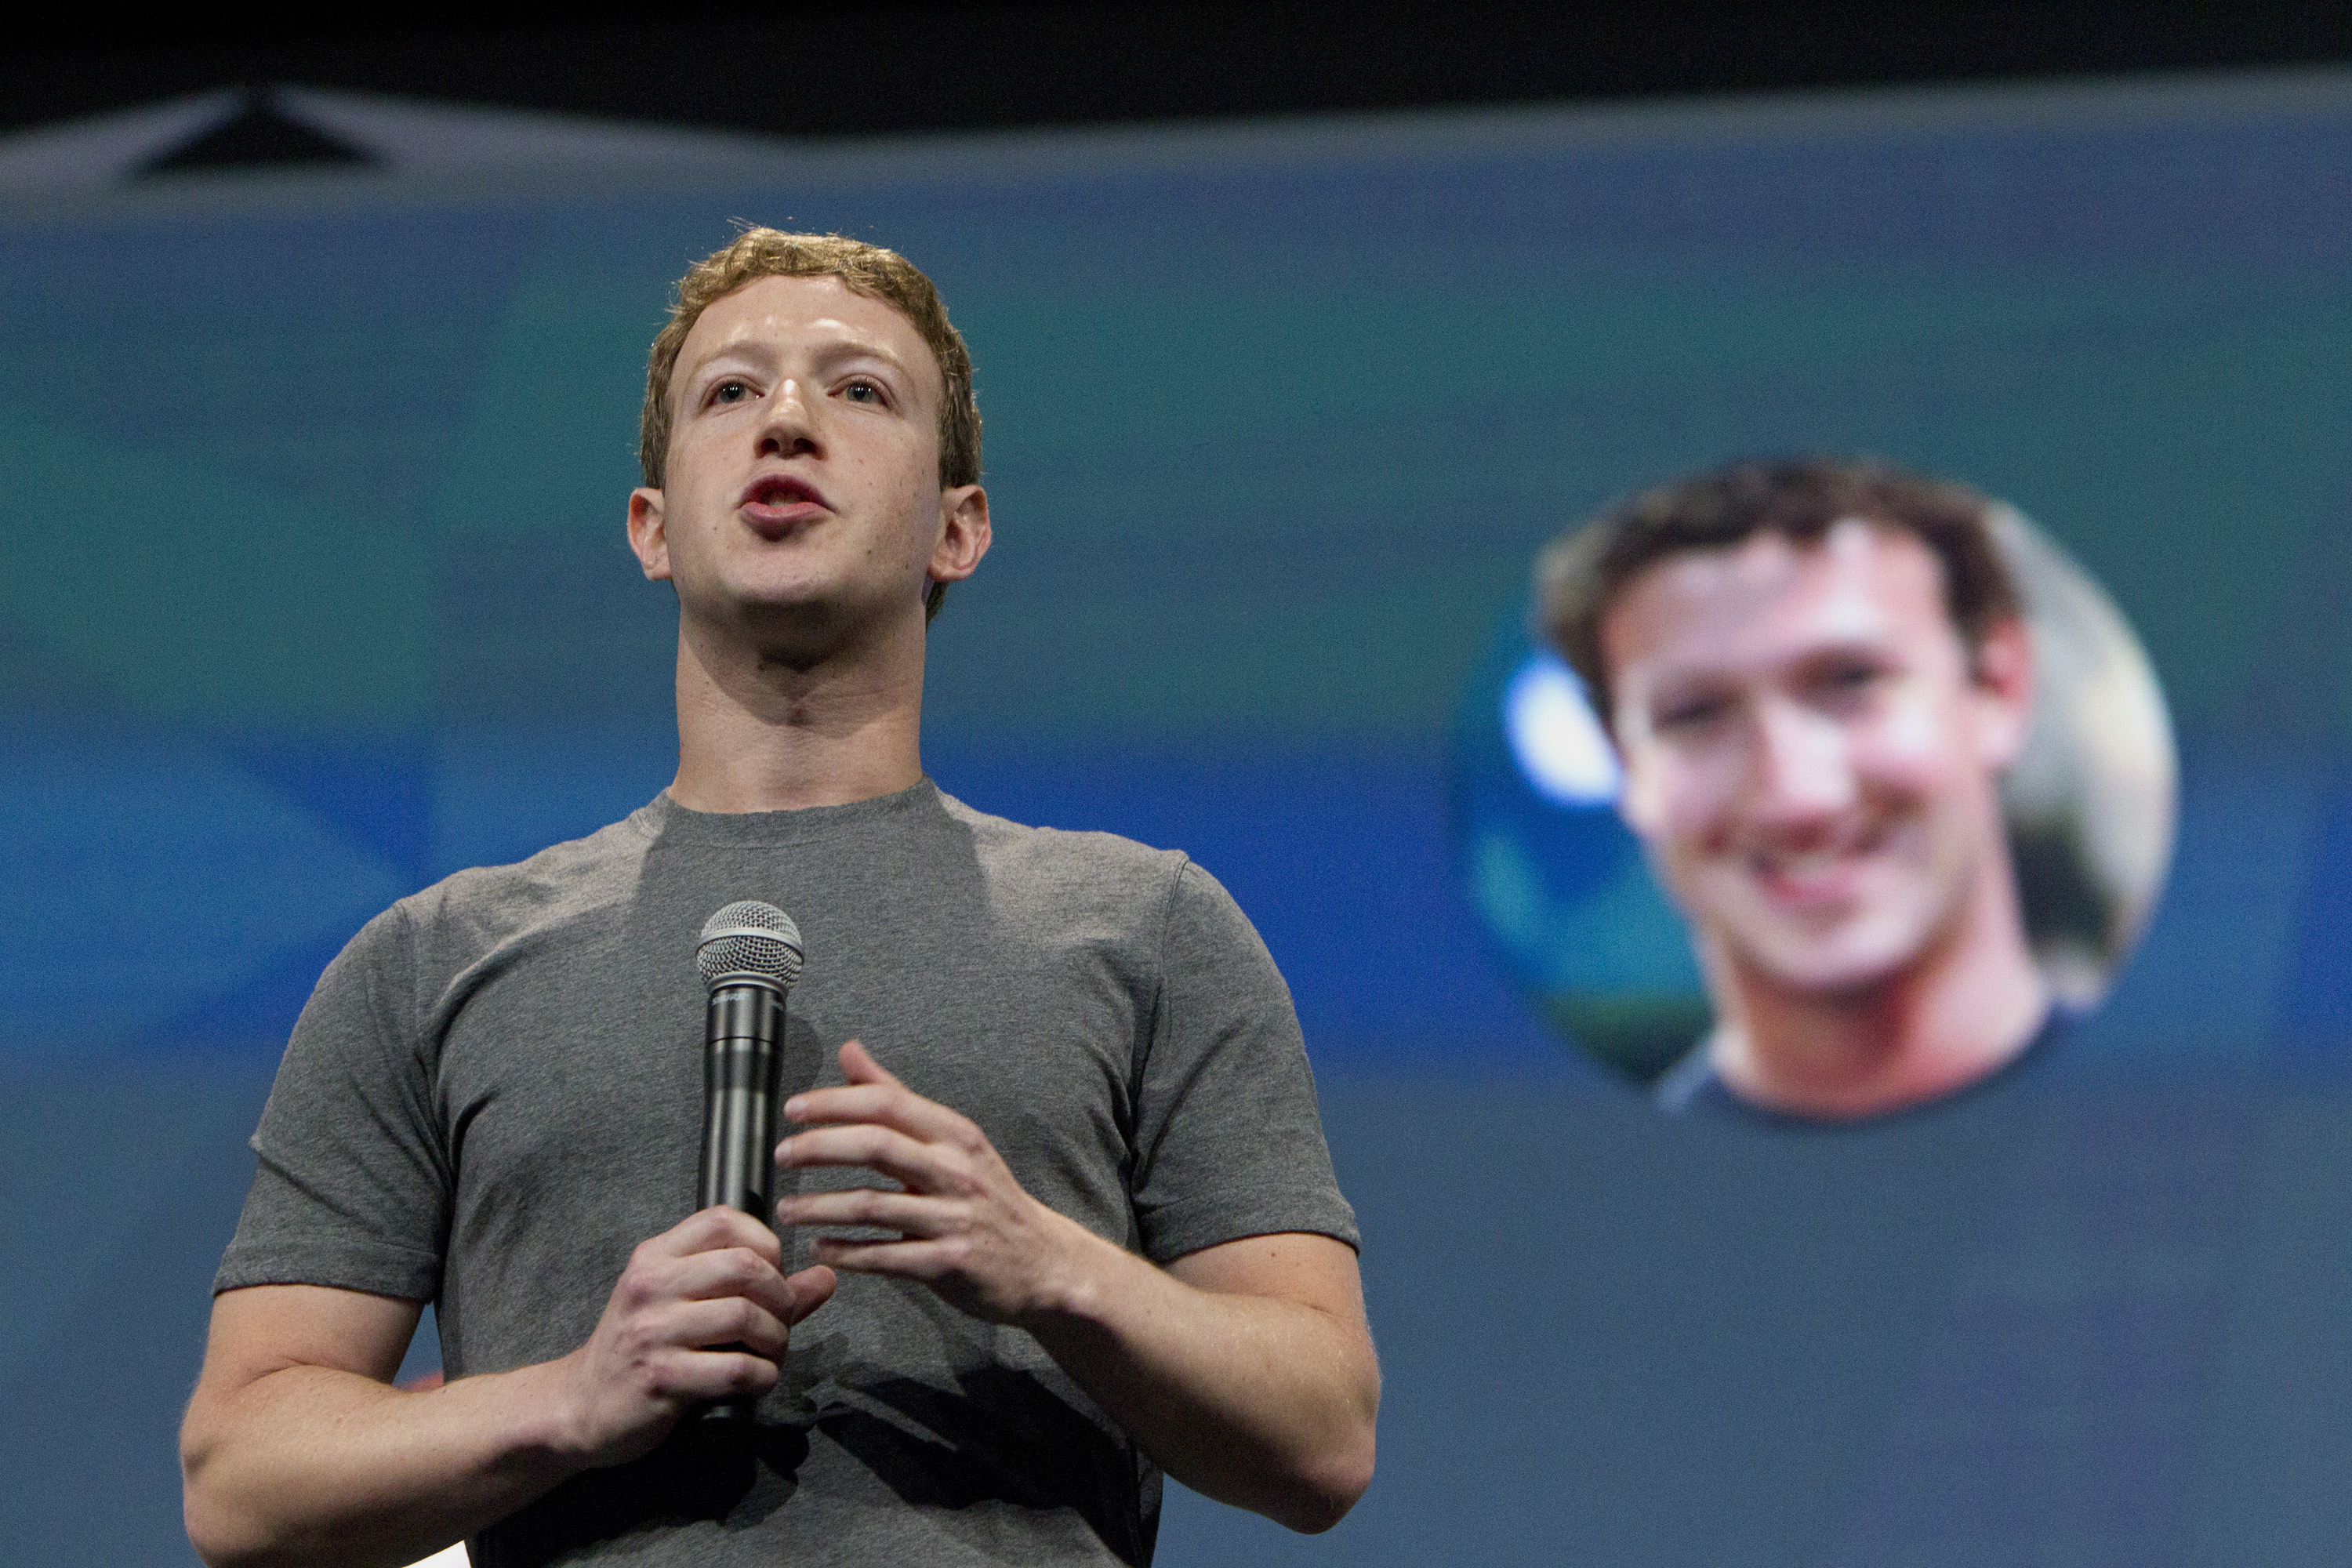 Facebook CEO Mark Zuckerberg speaks during the 2014 Facebook F8 Developers Conference in San Francisco.